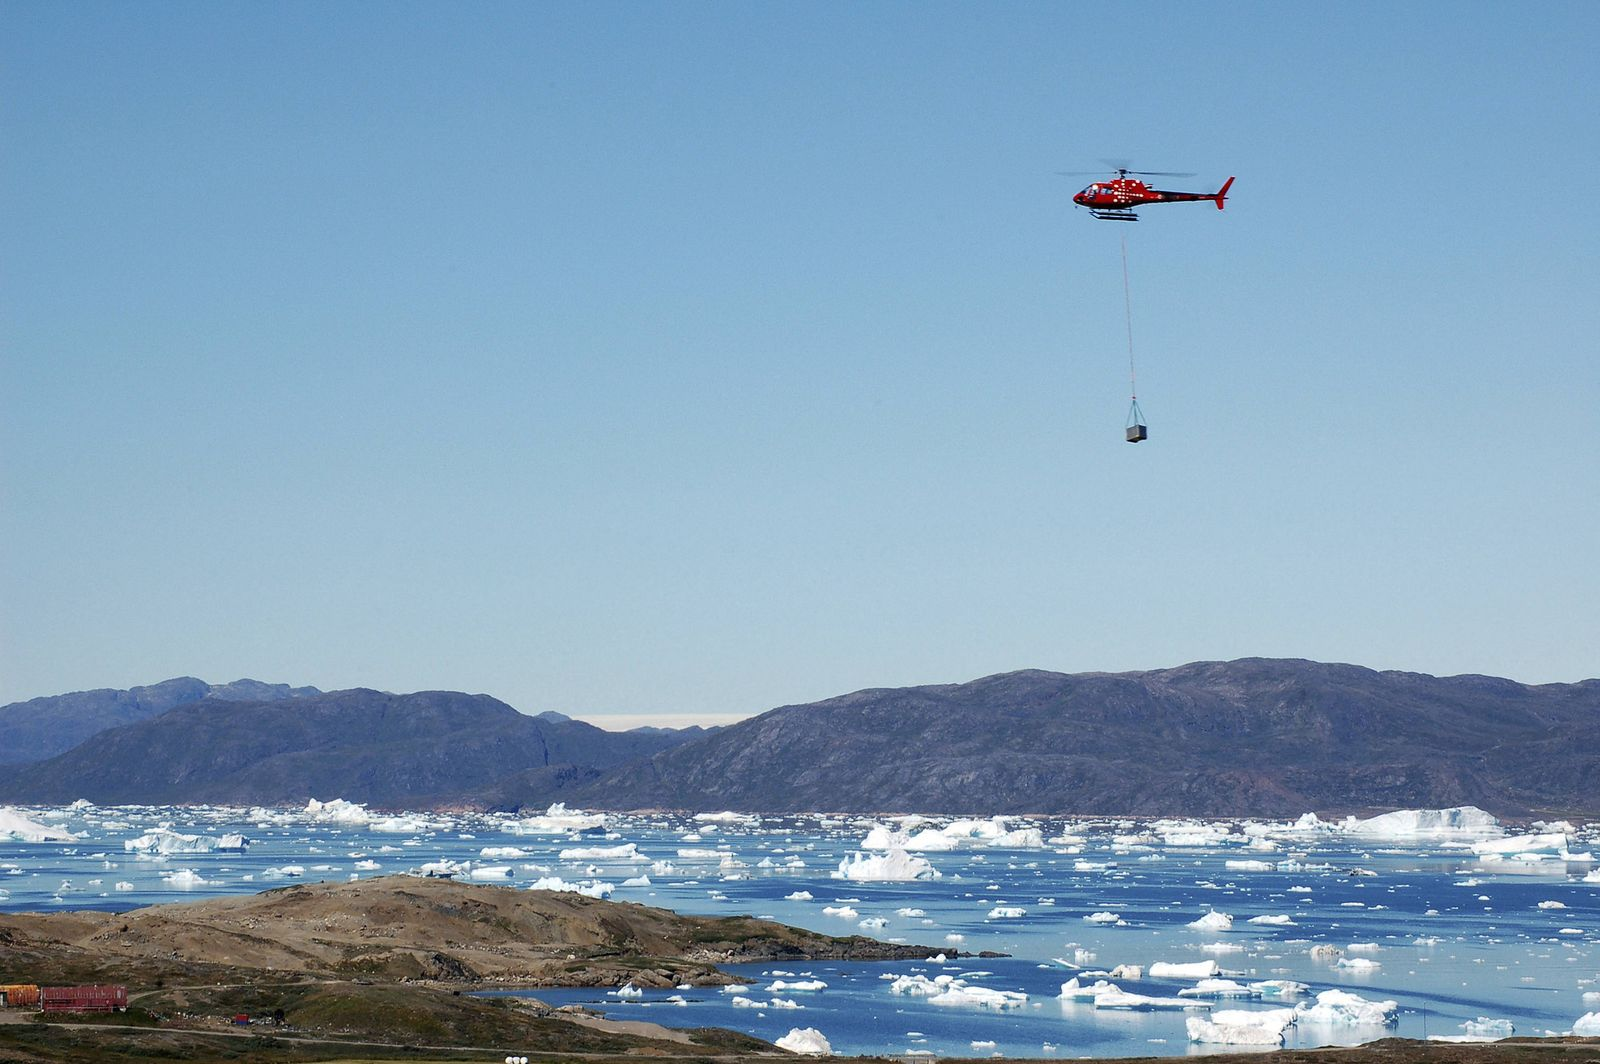 Helicopter delivering Research material from uranium mining project based in the mountains Narsaq